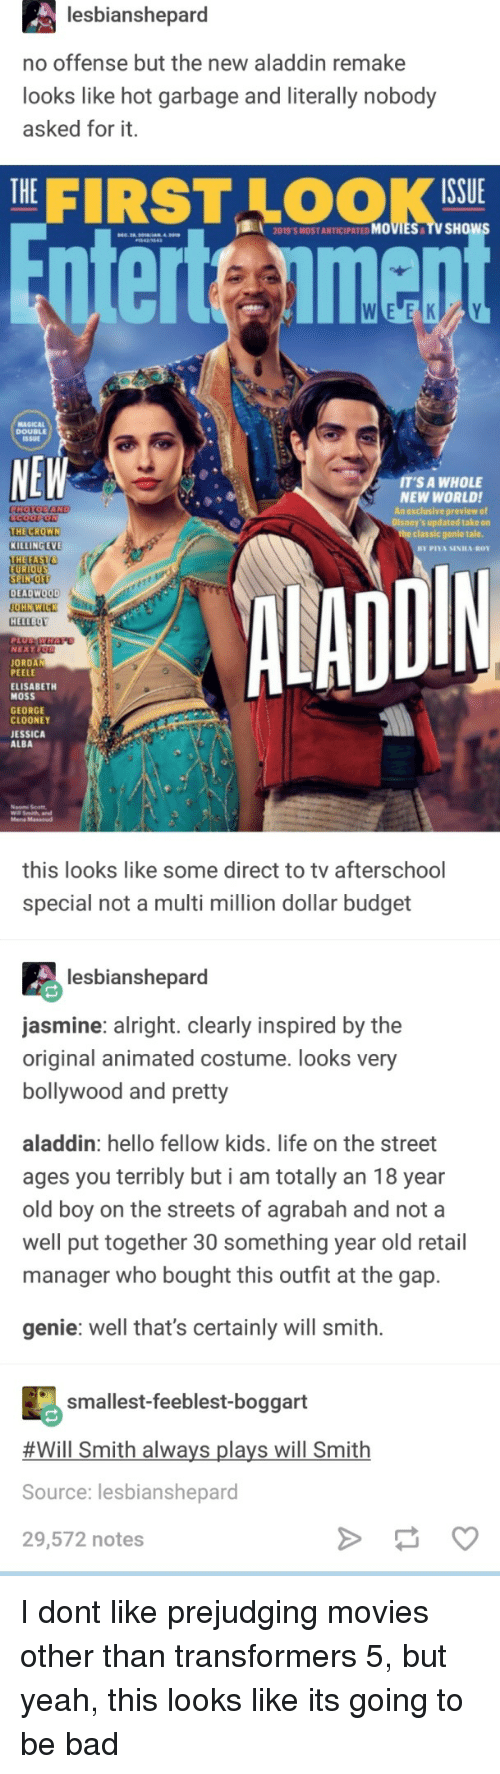 Agrabah, Aladdin, and Bad: lesbianshepard  no offense but the new aladdin remake  looks like hot garbage and literally nobody  asked for it.  THE|  FIRST LOOK  ISSUE  2019'S MOST ANTICIPATED MOVIES TV SHOw  nterteimen  MAGICAL  DOUBLEE  SSUE  NEW  T'S A WHOLE  NEW WORLDI  An exclusive preview of  s updated take on  THE CROWN  KILLING EVE  THETAST  the classic genle tale.  DIN  EU  SPIN-O  DEADWOOD  HELLBOY  NEXT  JORDAN  PEELE  ELISABETH  MOSS  GEORGE  CLOONEY  JESSICA  ALBA  Mena Massoud  this looks like some direct to tv afterschool  special not a multi million dollar budget  lesbianshepard  asmine: alright. clearly inspired by the  original animated costume. looks very  bollywood and pretty  aladdin: hello fellow kids. life on the street  ages you terribly but i am totally an 18 year  old boy on the streets of agrabah and not a  well put together 30 something year old retail  manager who bought this outfit at the gap.  genie: well that's certainly will smith.  smallest-feeblest-boggart  #Will Smith always plays will Smith  Source: lesbianshepard  29,572 notes I dont like prejudging movies other than transformers 5, but yeah, this looks like its going to be bad